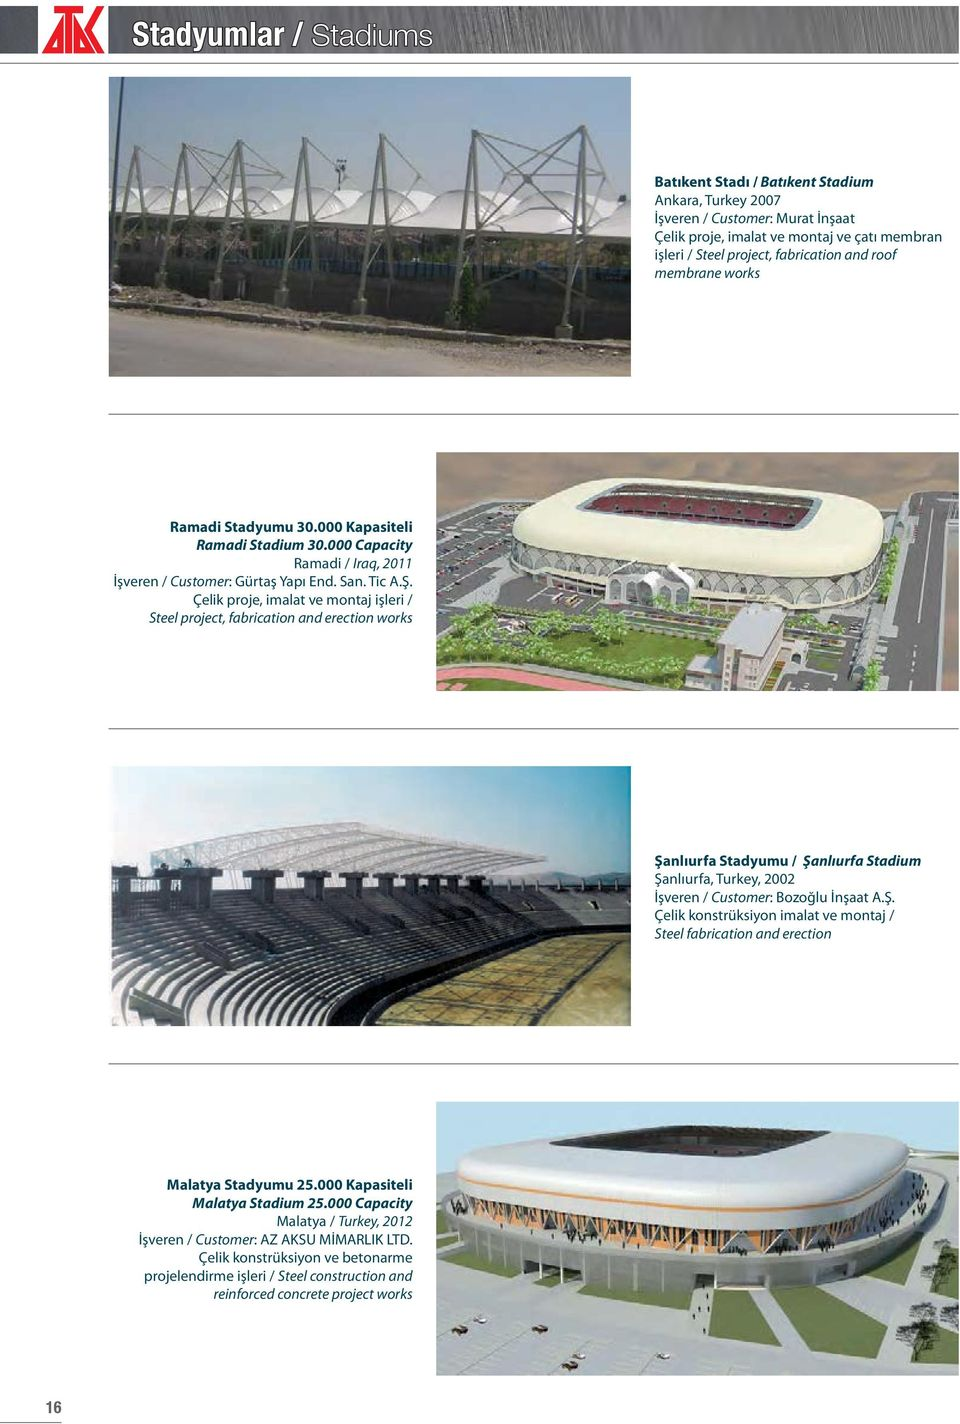 Çelik proje, imalat ve montaj işleri / Steel project, fabrication and erection works Şanlıurfa Stadyumu / Şanlıurfa Stadium Şanlıurfa, Turkey, 2002 İşveren / Customer: Bozoğlu İnşaat A.Ş. Çelik konstrüksiyon imalat ve montaj / Steel fabrication and erection Malatya Stadyumu 25.